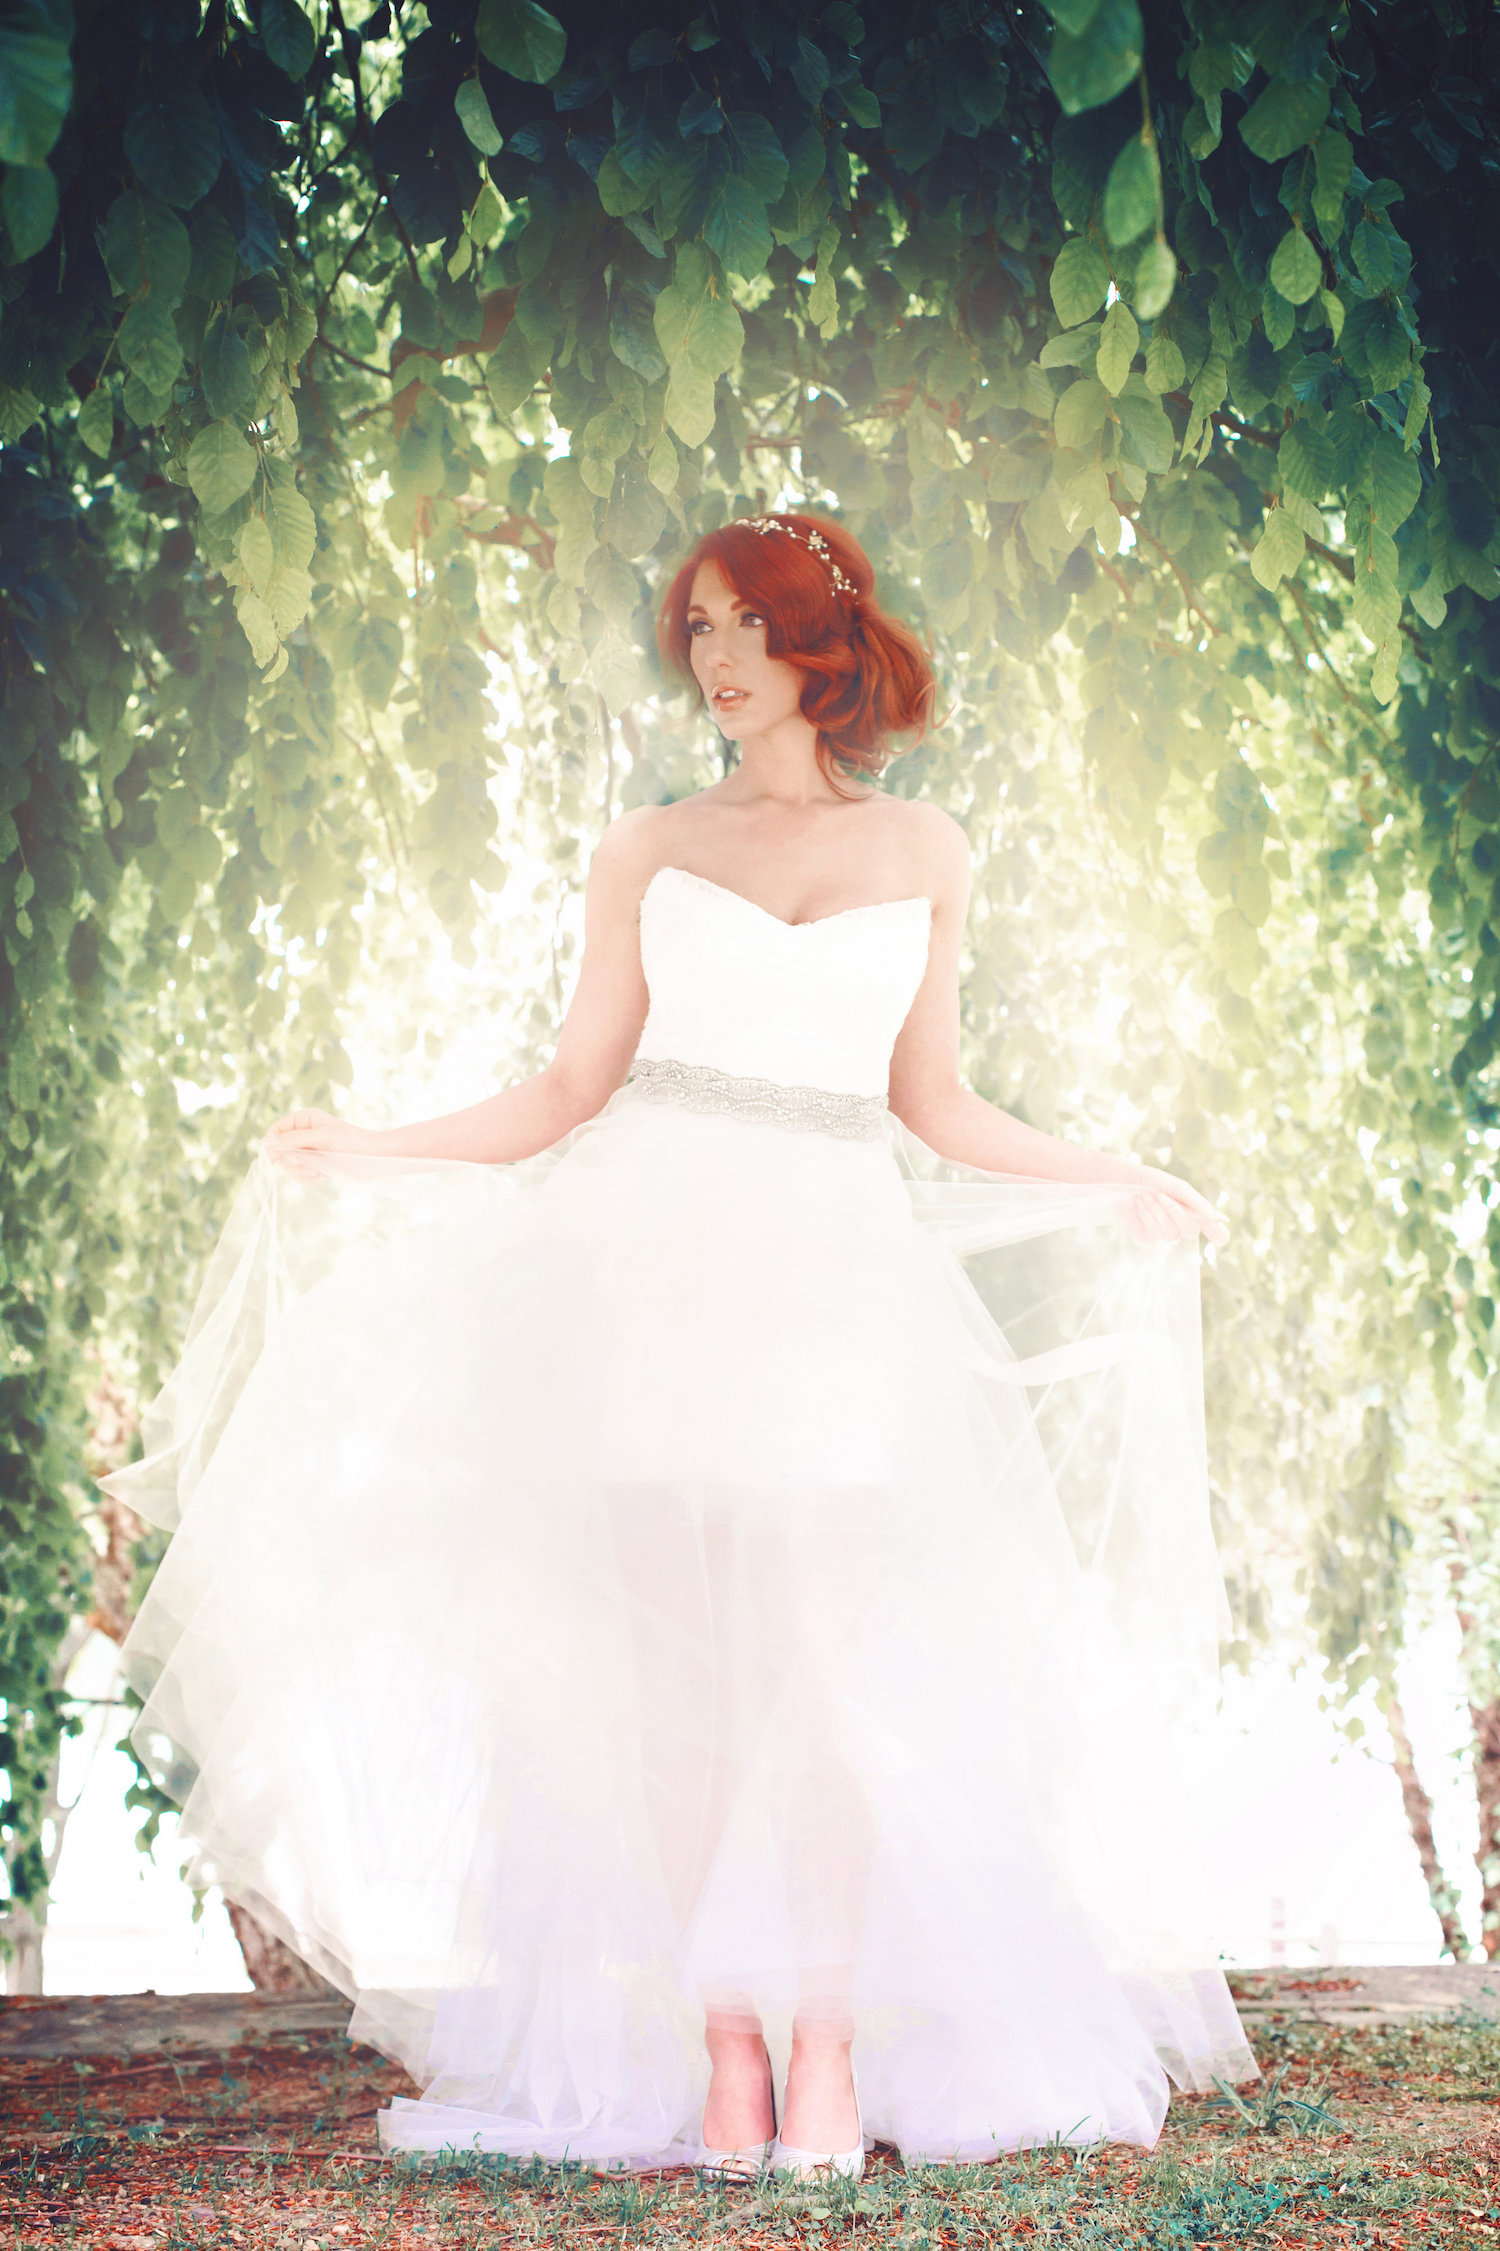 23 Dreamy Bridal Portrait Poses for Wedding Day Inspiration / photos by La Candella Weddings / designs by Fancy Bowtique Bridal Couture